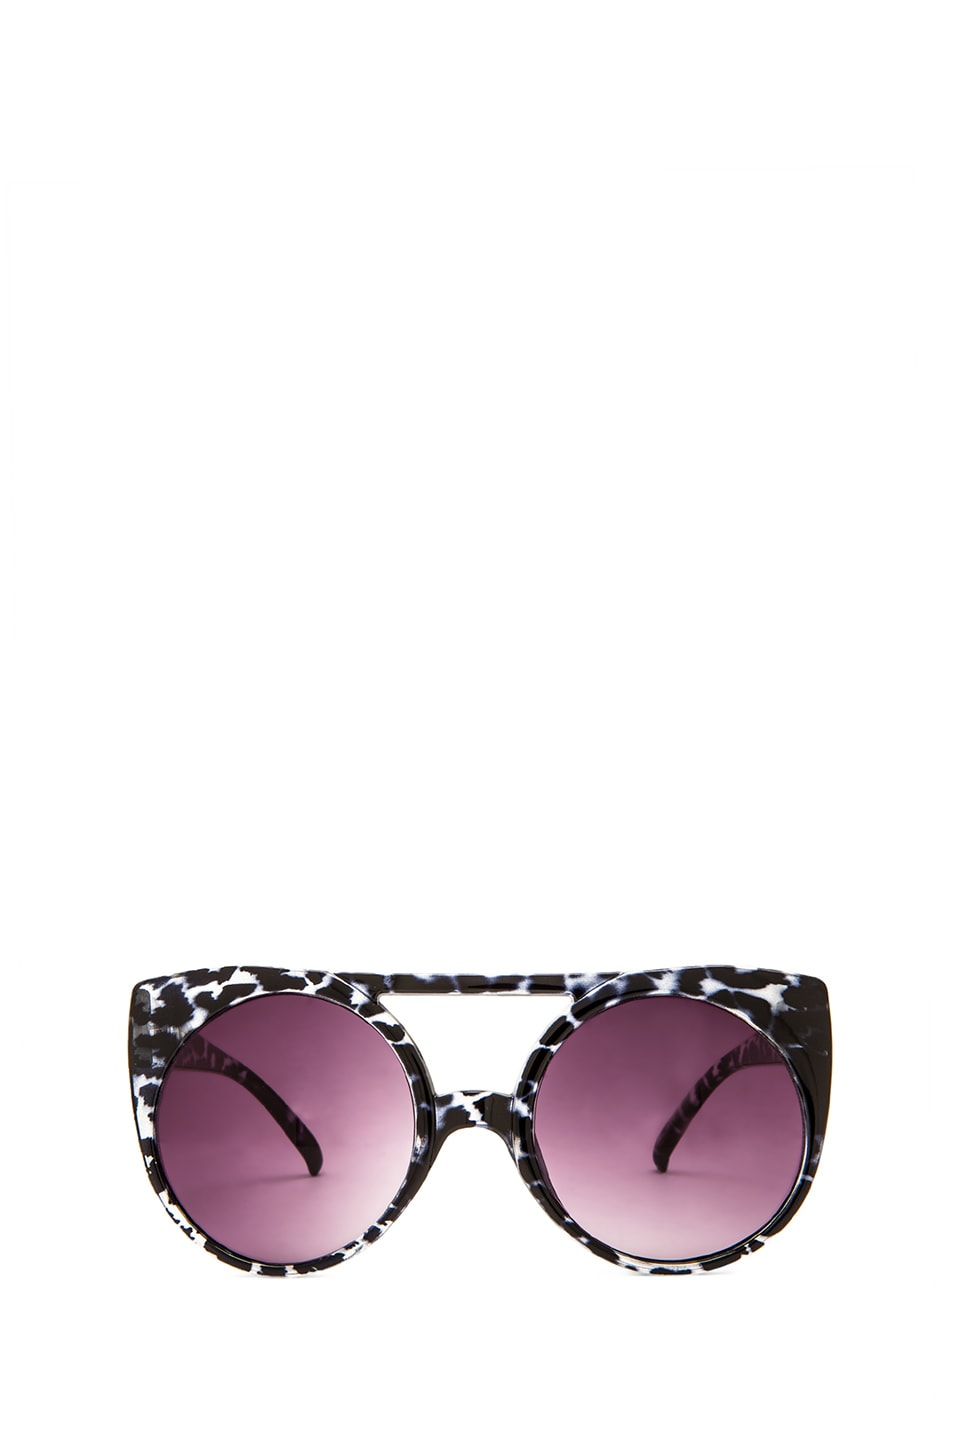 Quay Ishmish Sunglasses in Black Tortoiseshell